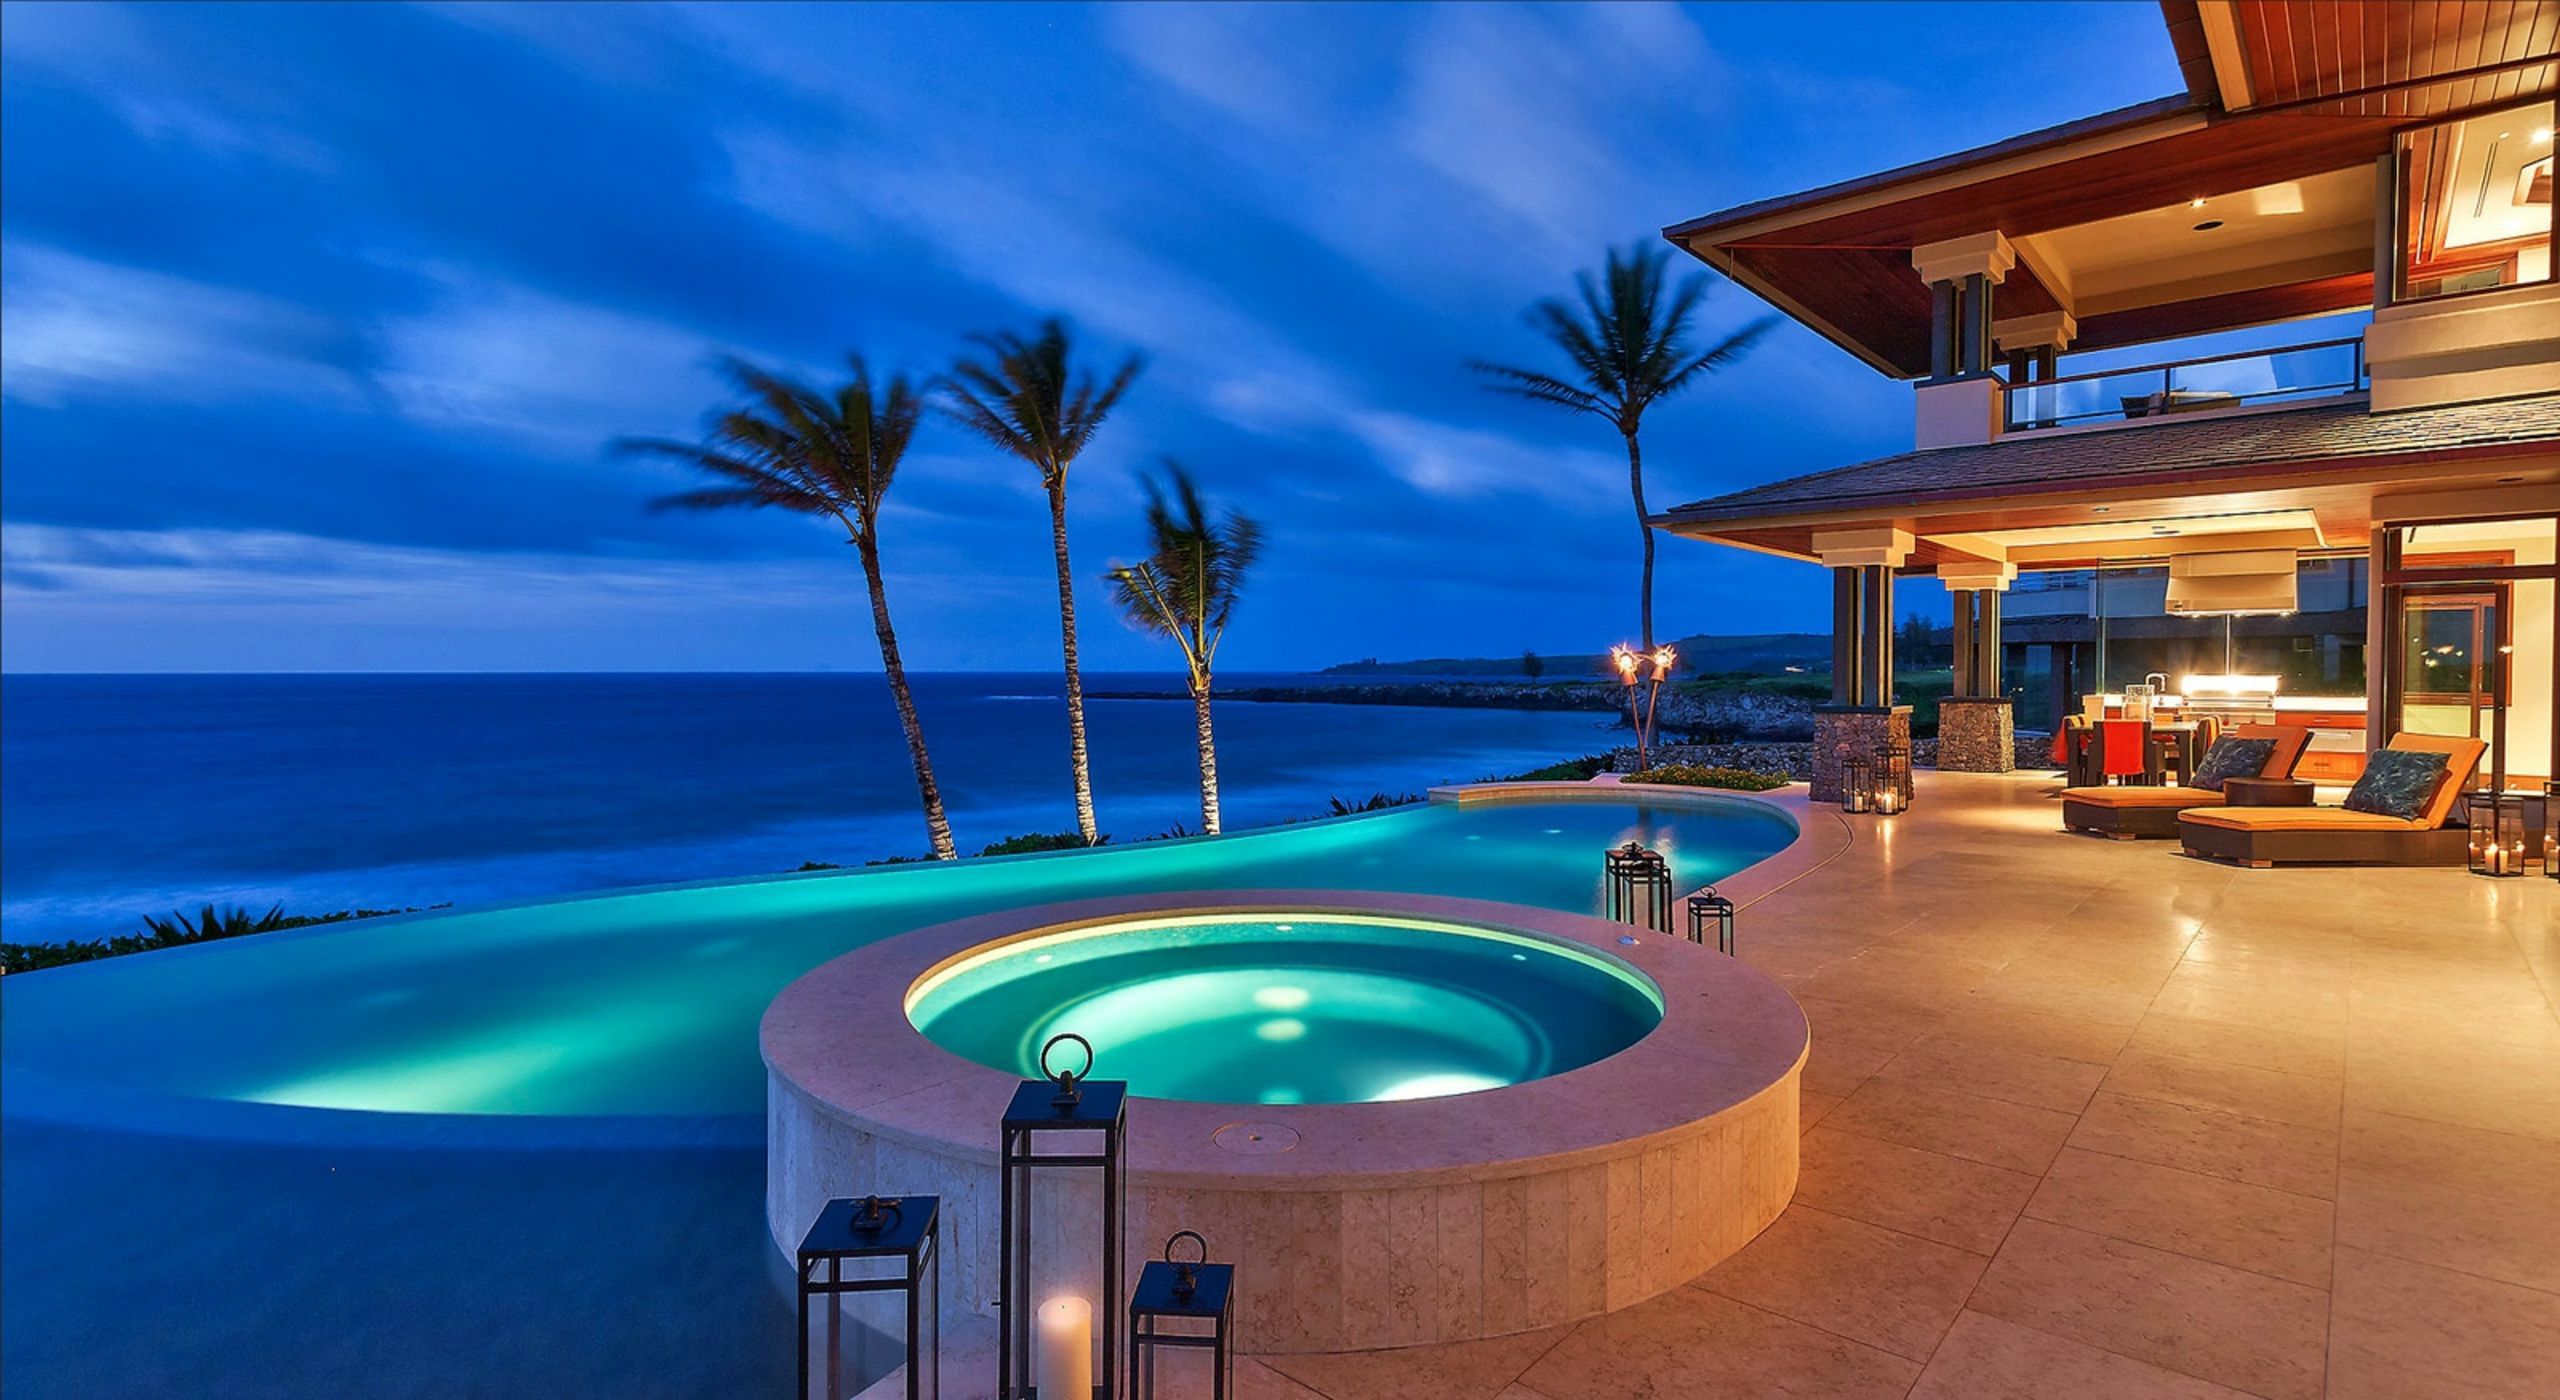 Infinity Pools and Spas